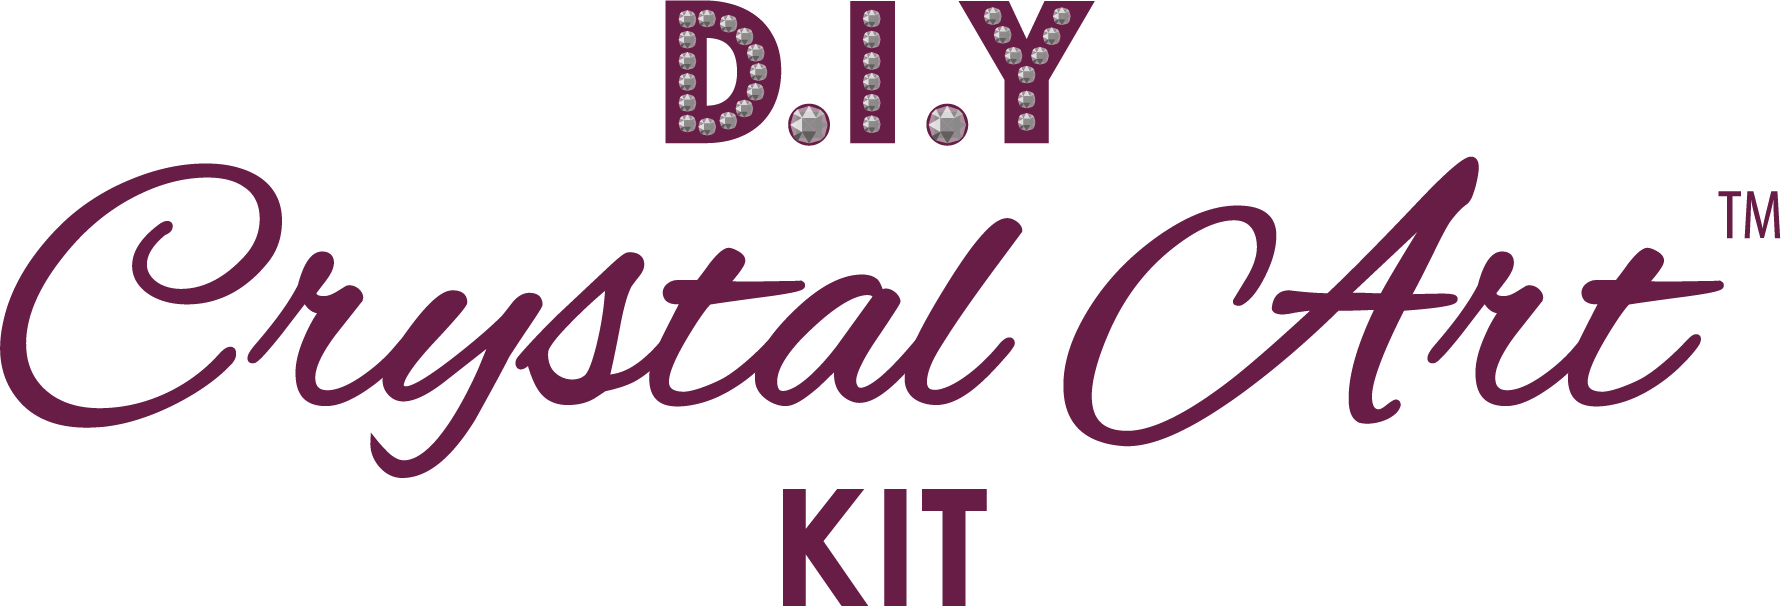 Crystal Card and Art Kit